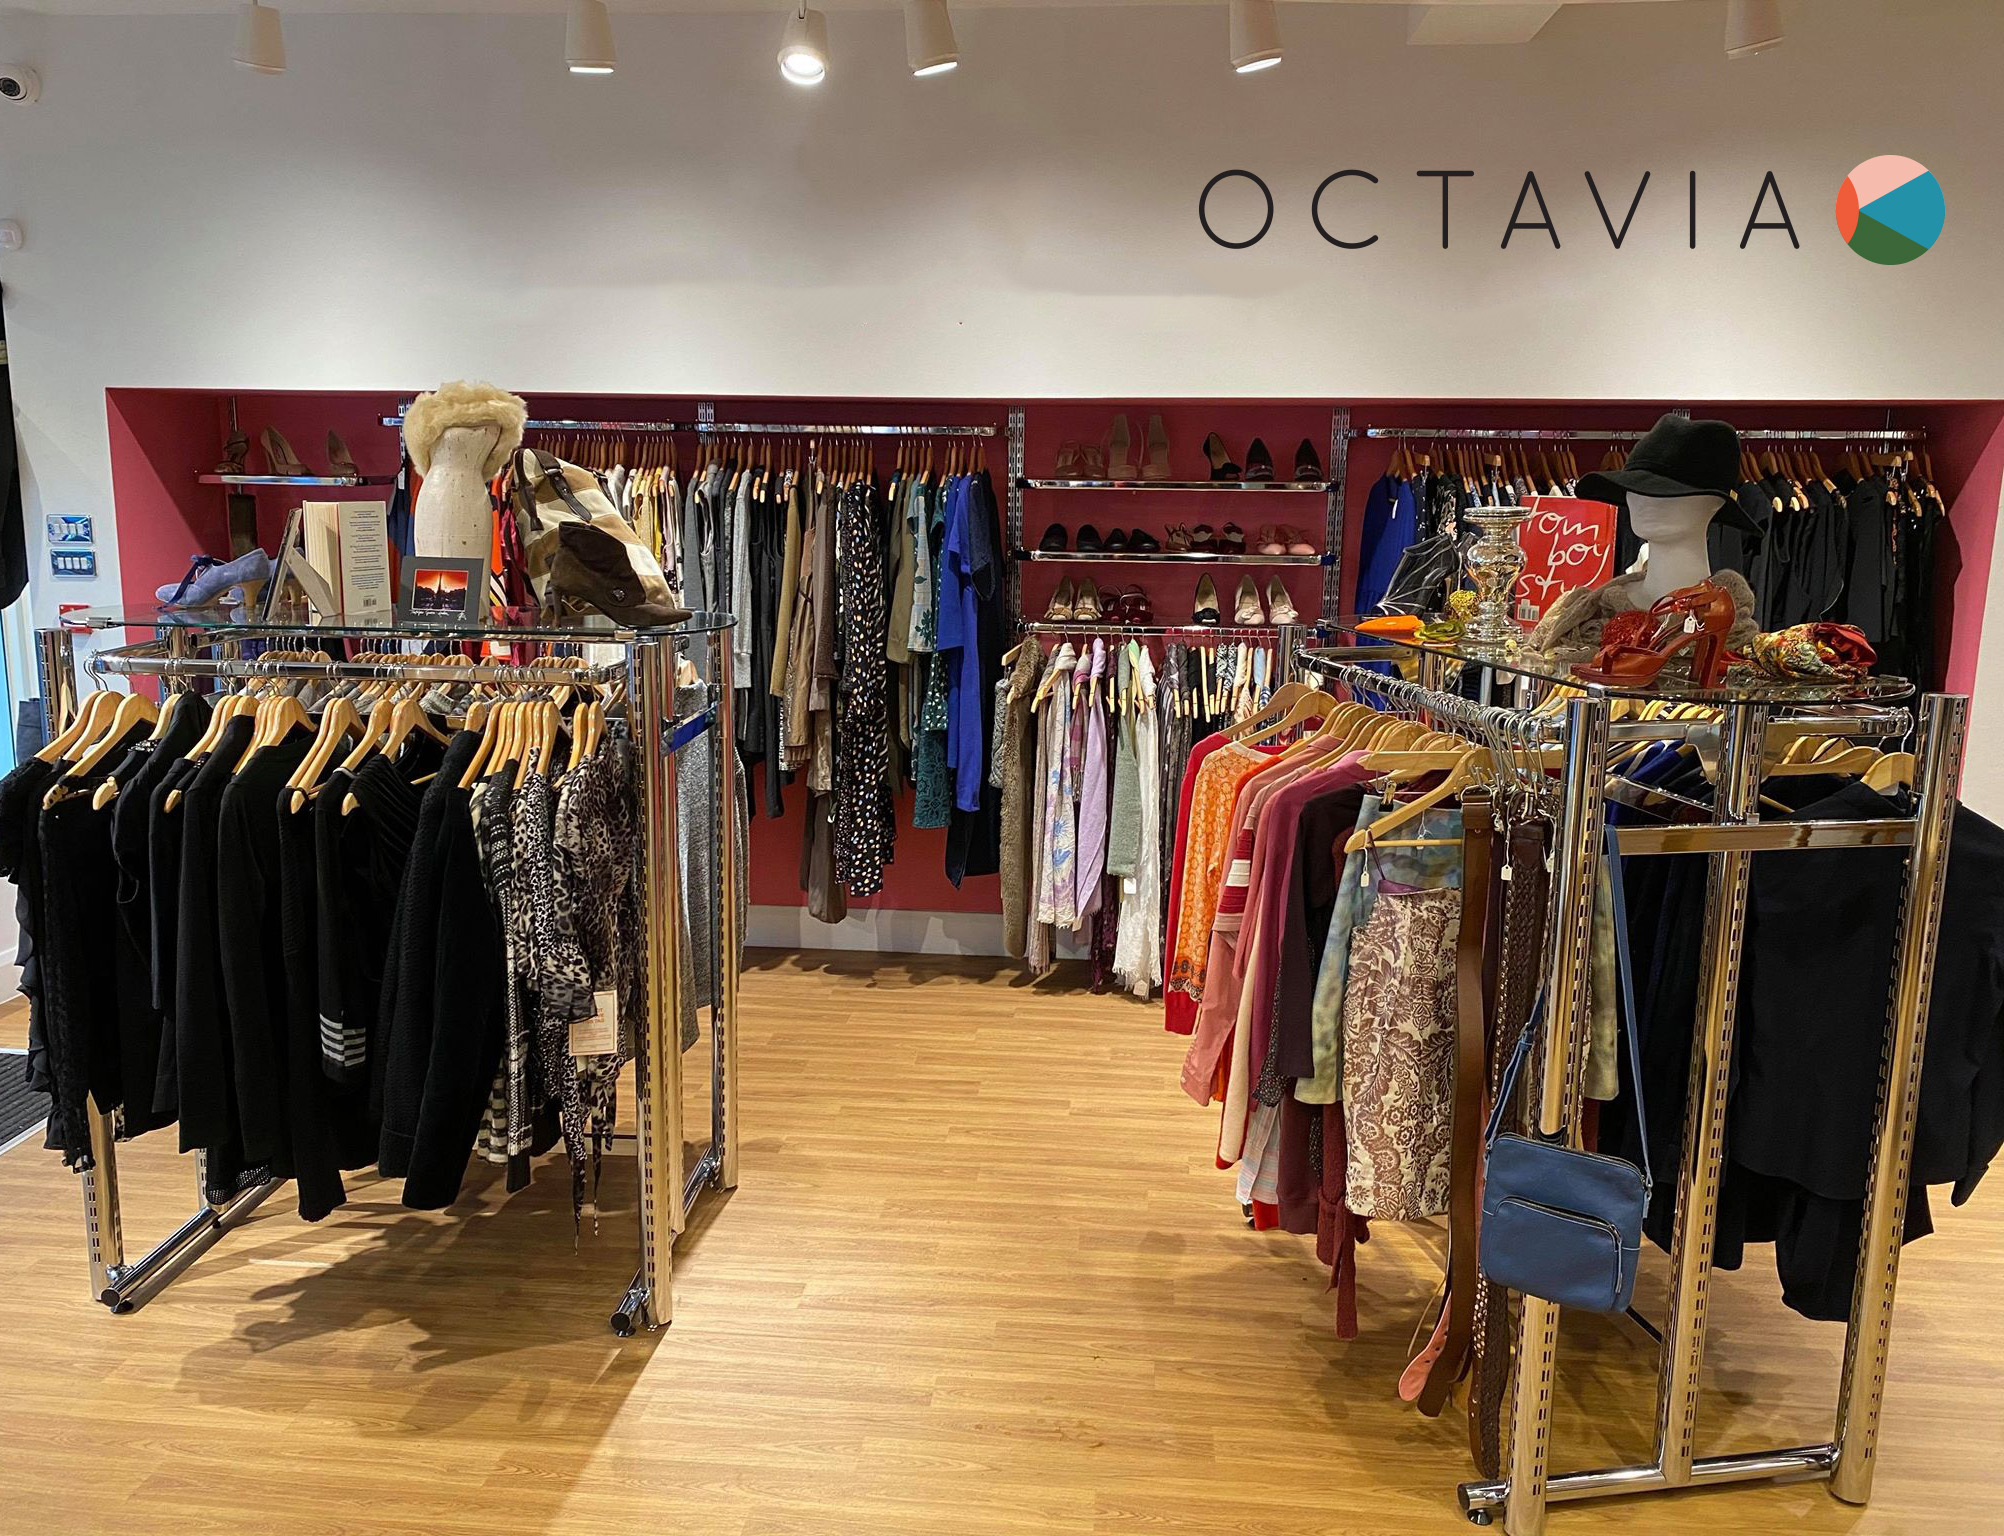 Octavia shop 4 original